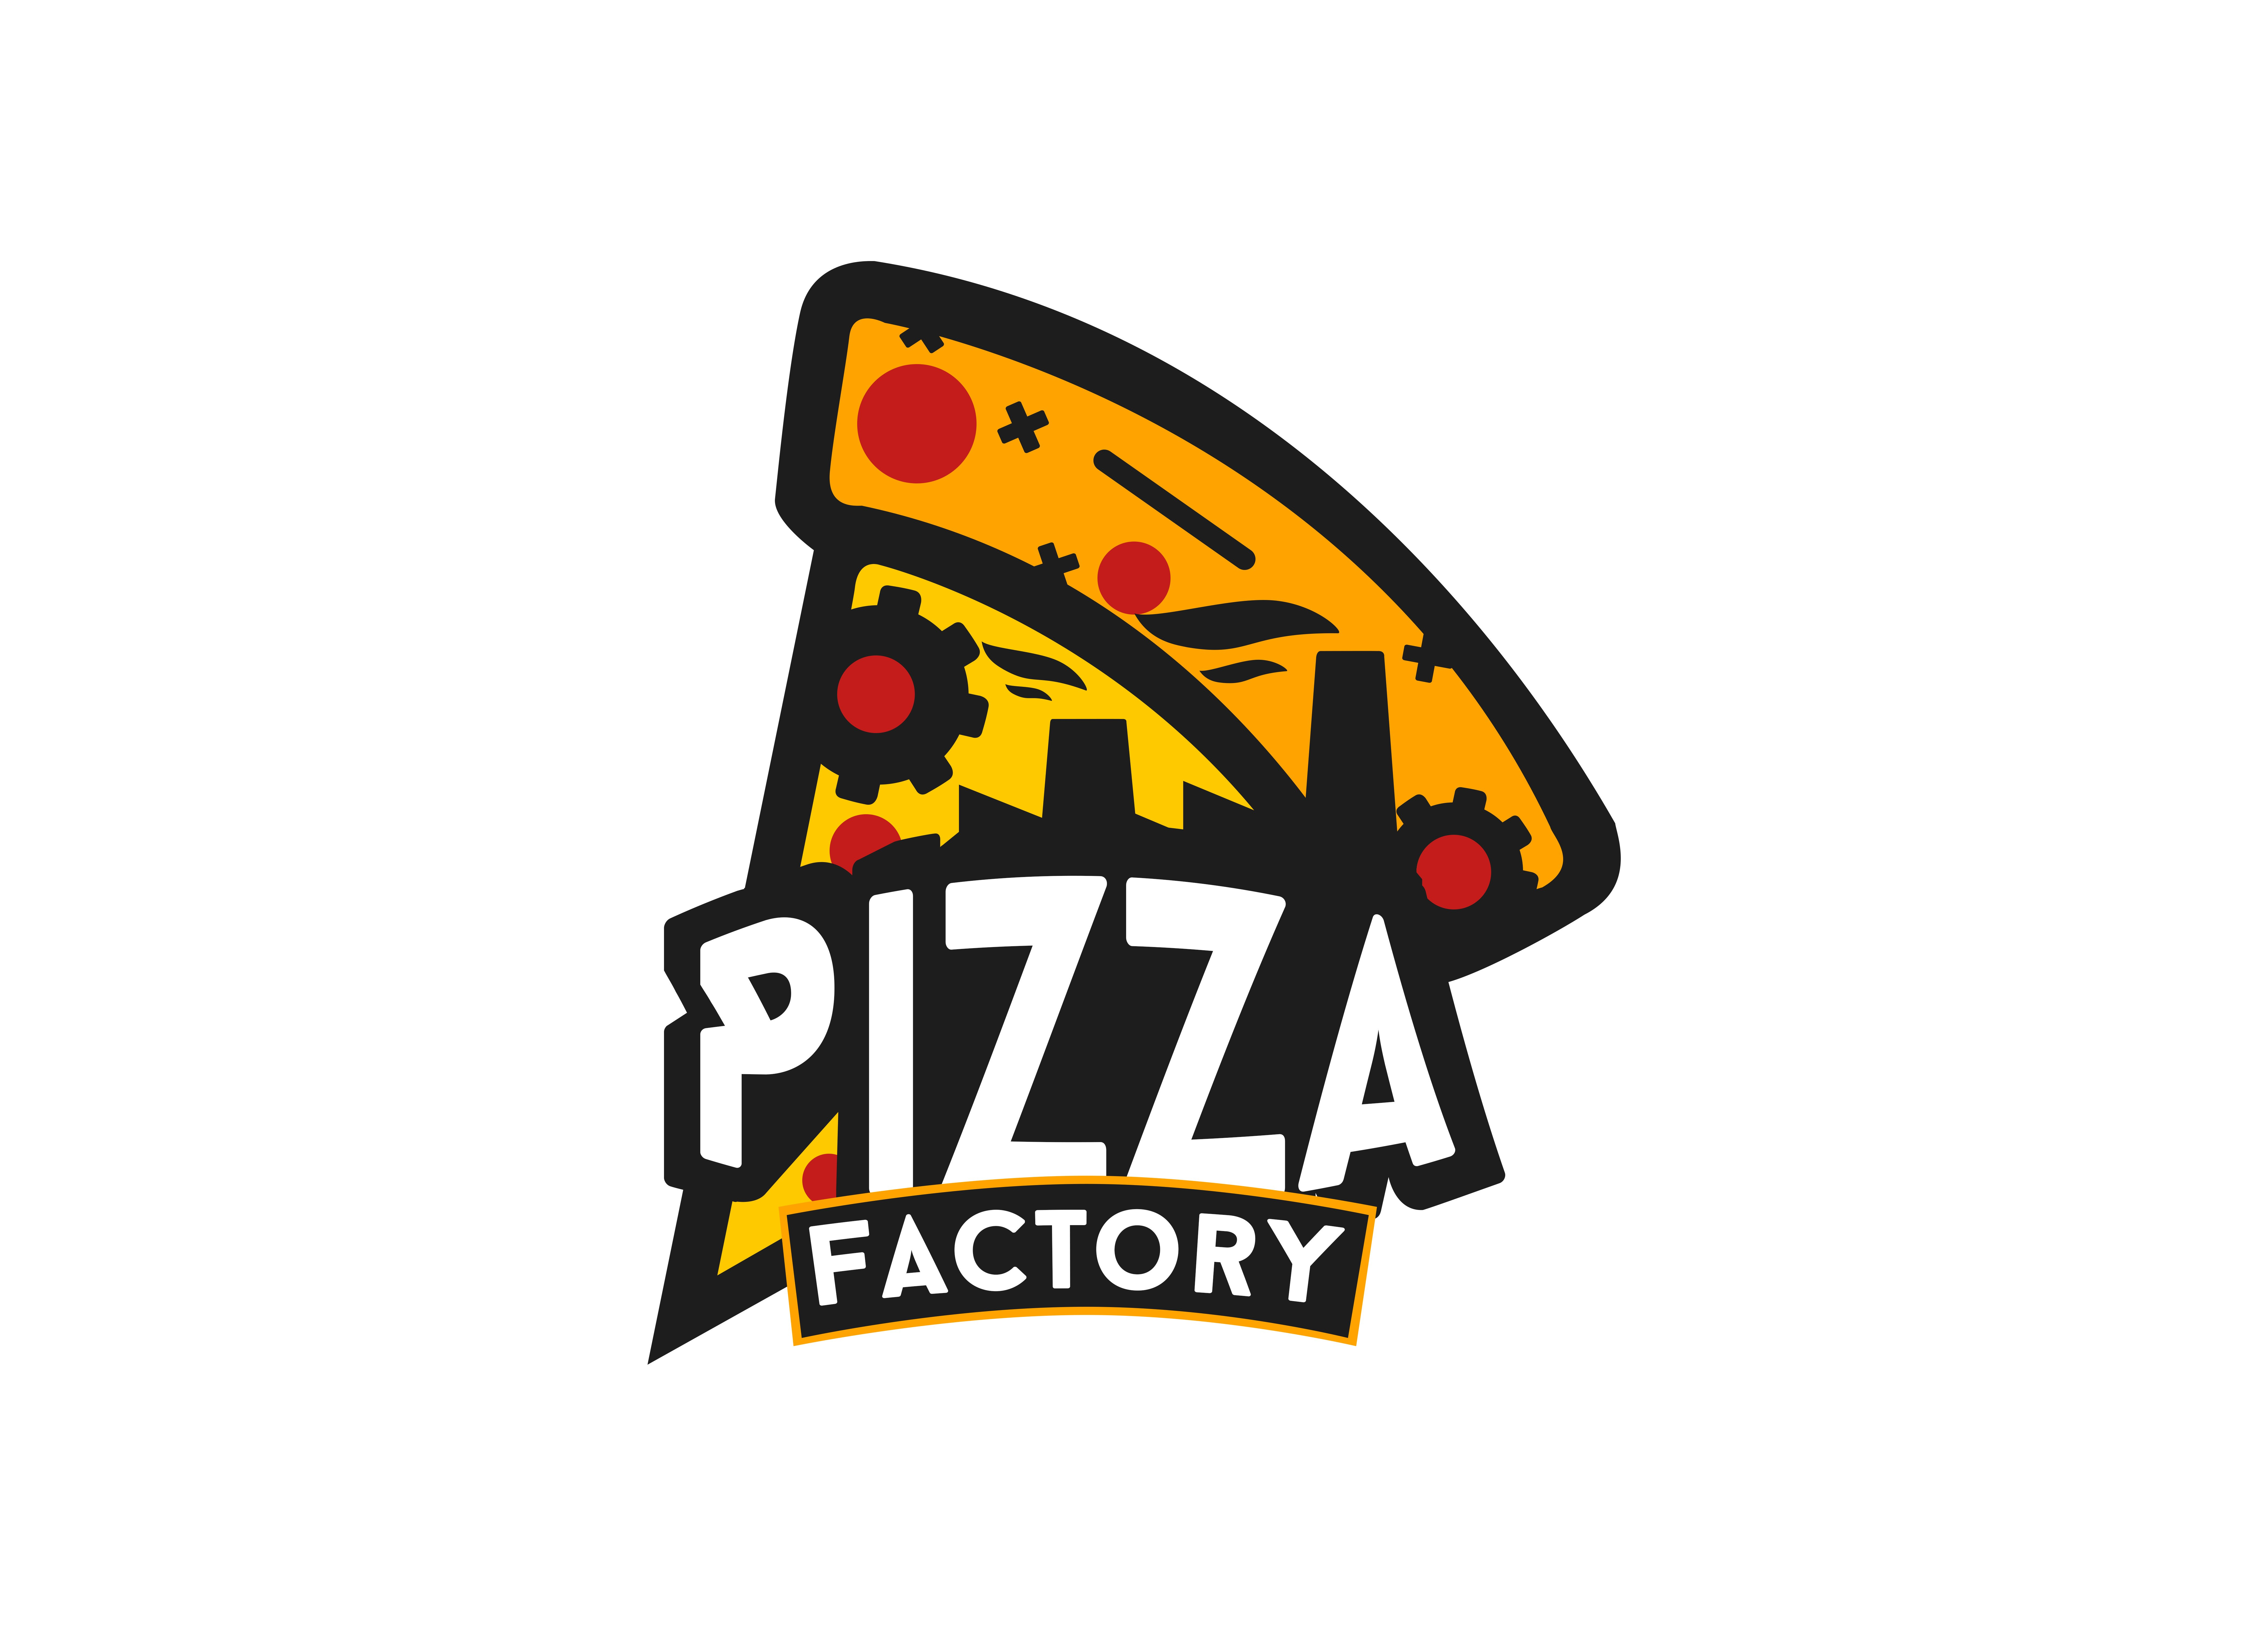 Pizza Factory Cartagena